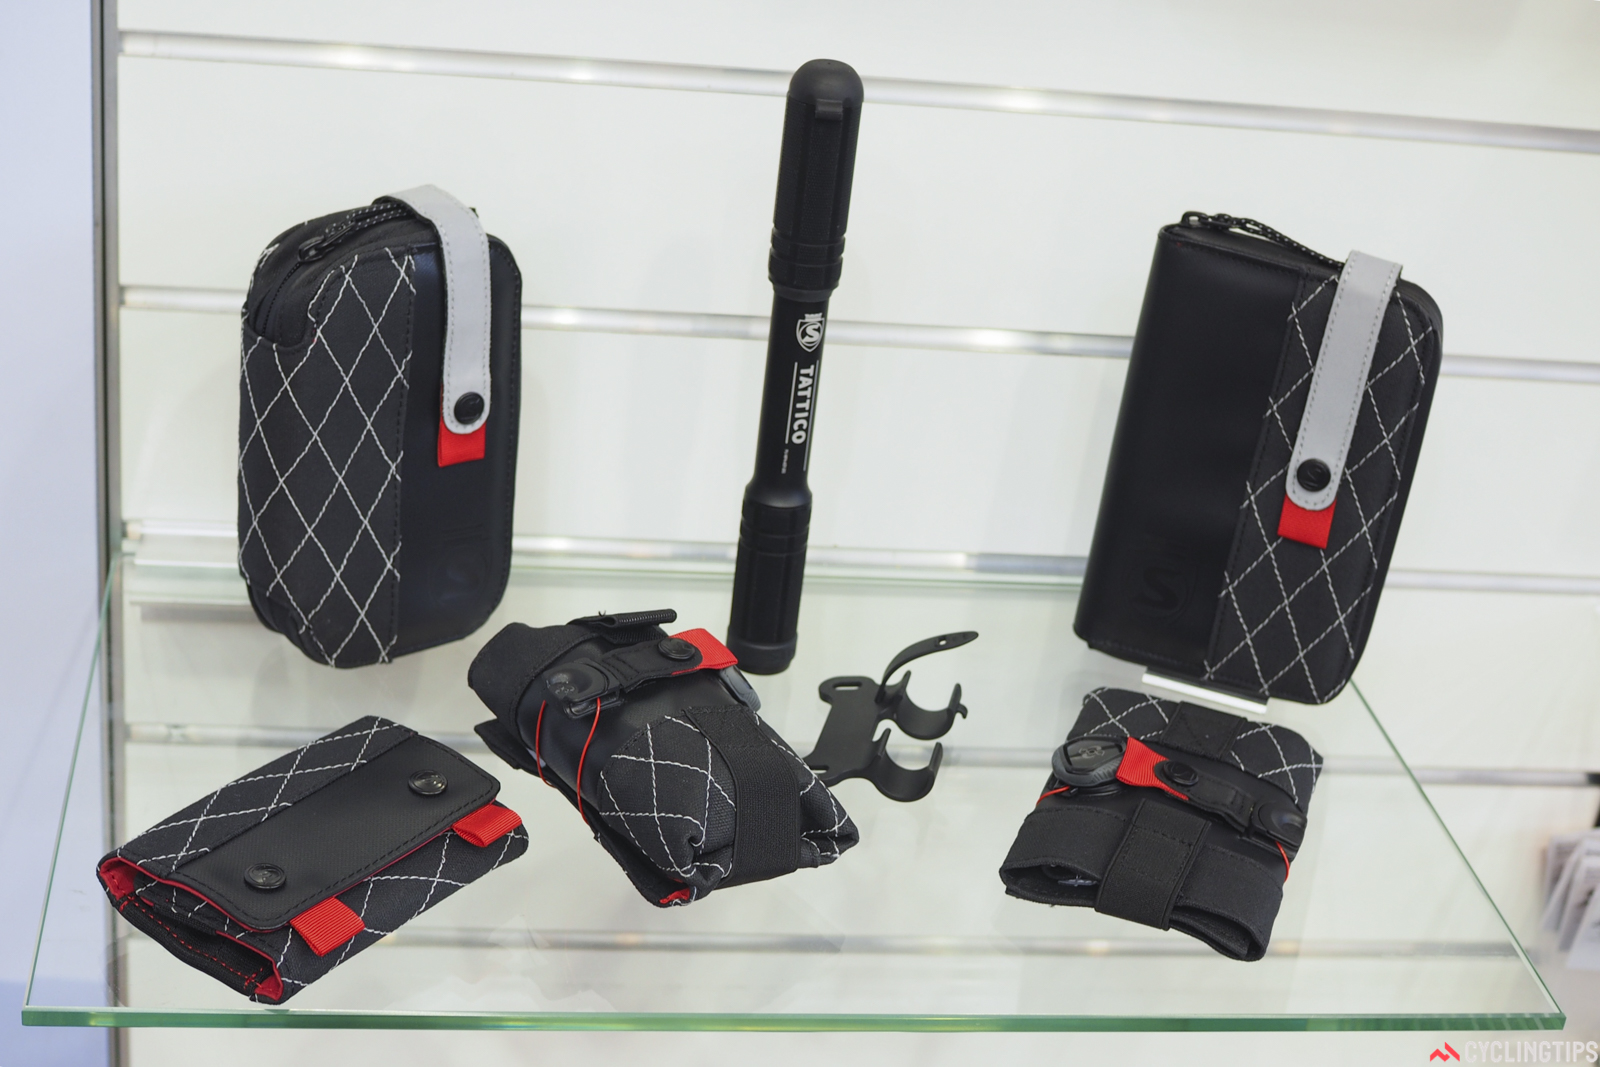 Silca continues to expand, now with a more complete range of bags that includes a waterproof phone wallet (using a rolltop dry bag insert), a tire repair case, a Boa-equipped seat pack, and a case for its new T-Ratchet compact torque wrench. Photo: James Huang.